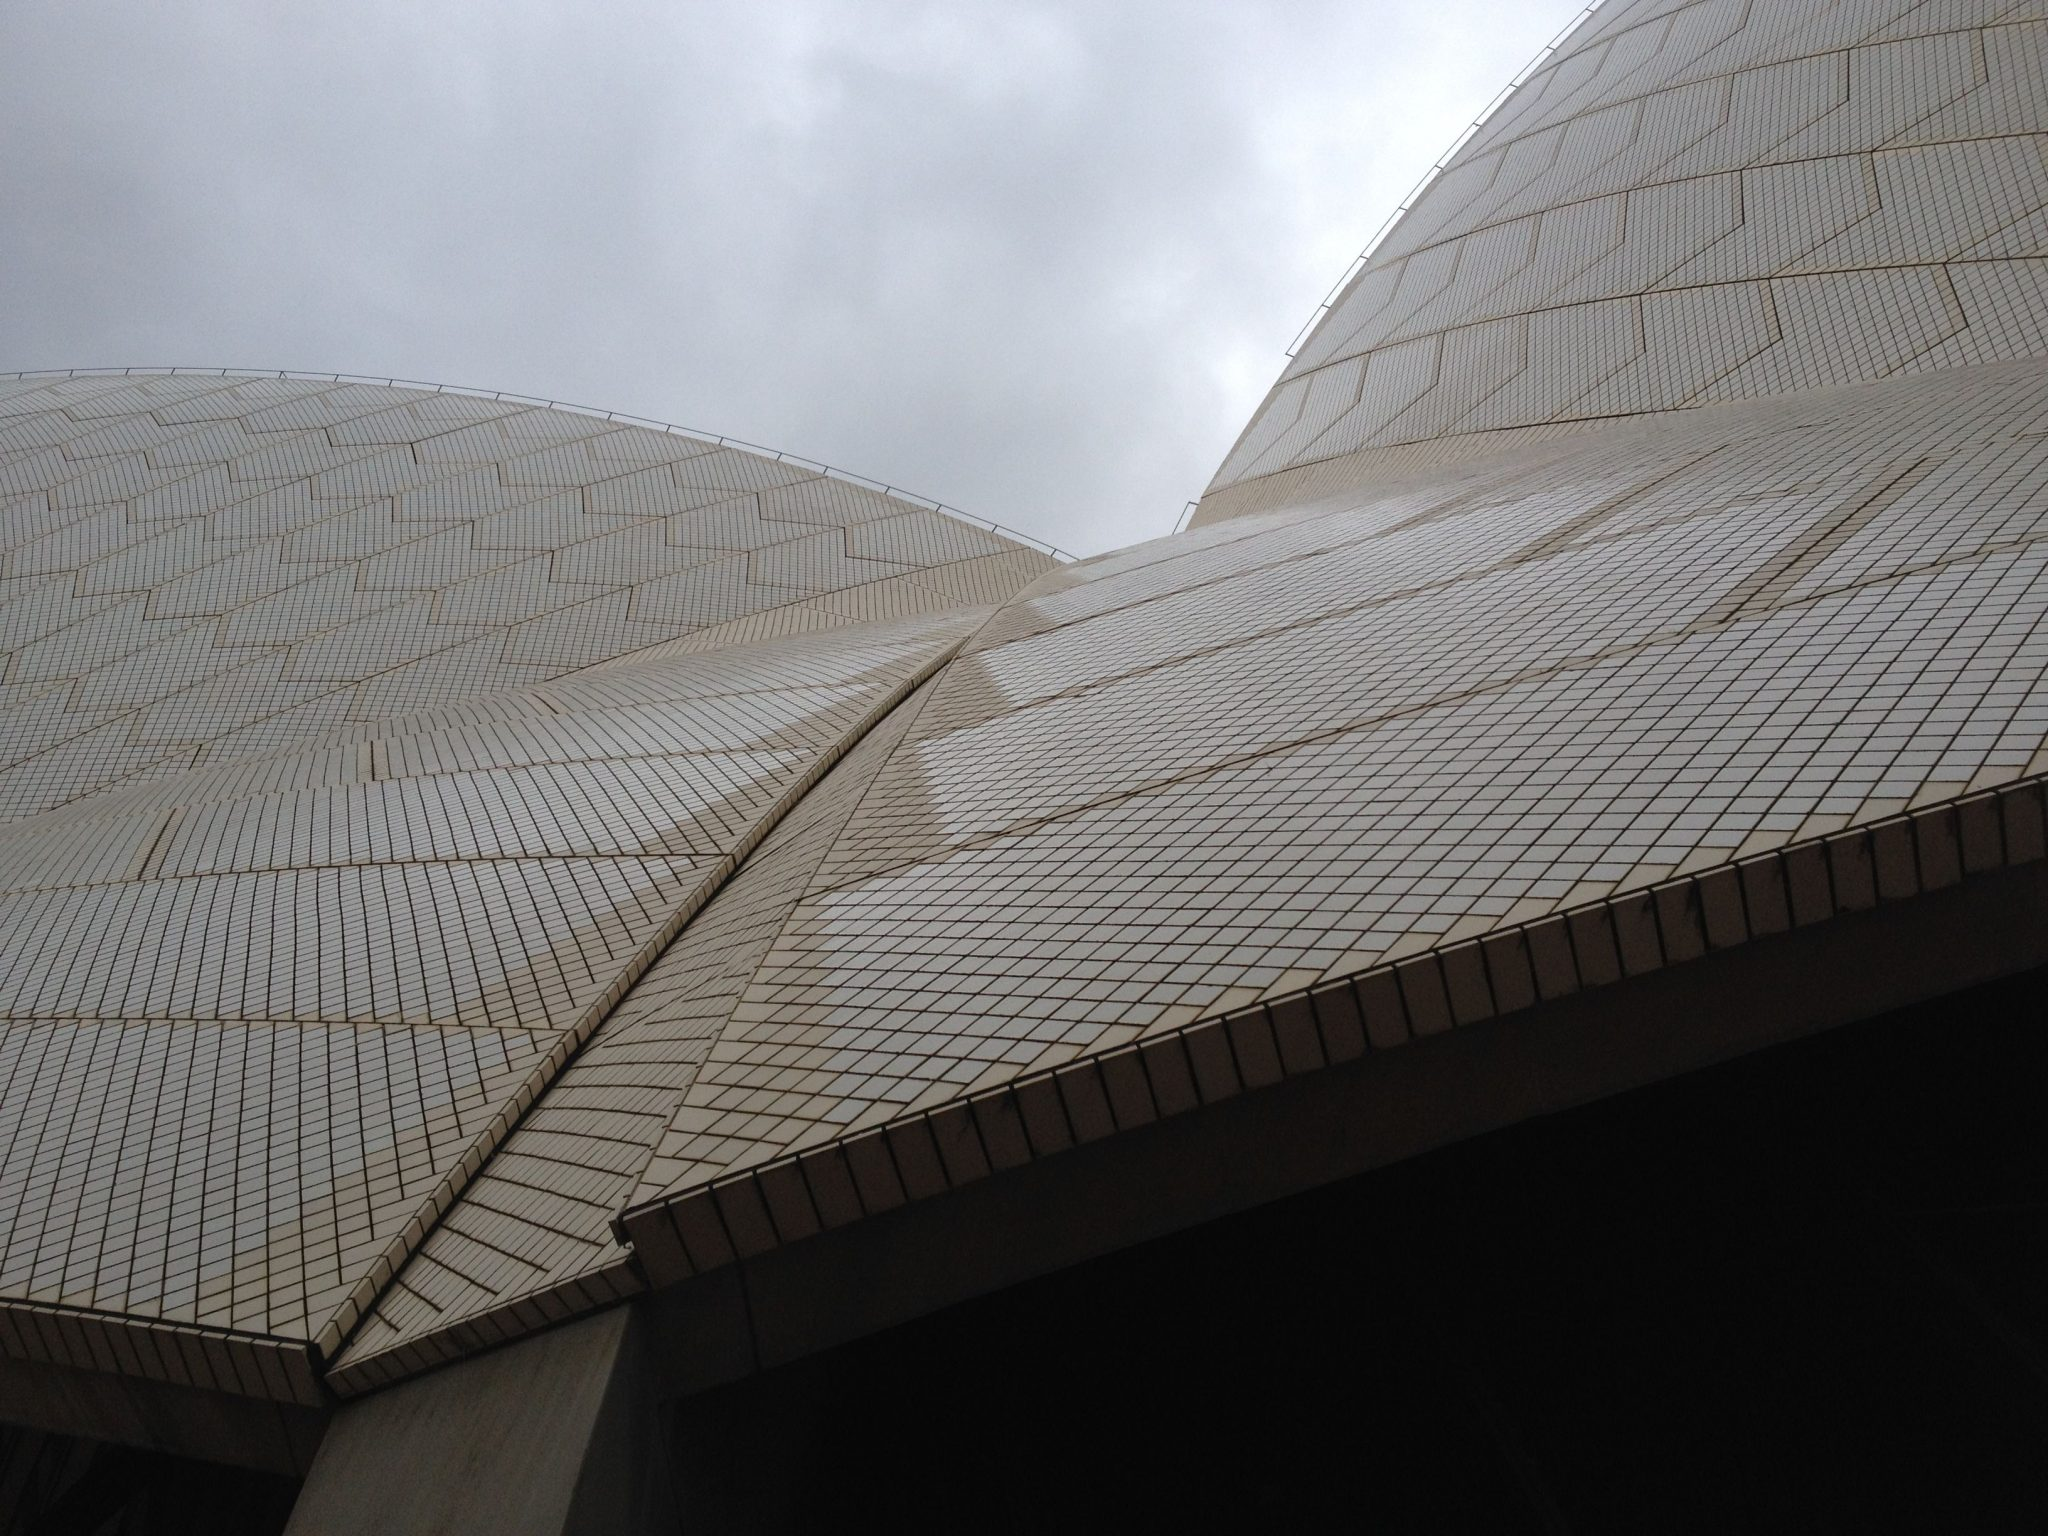 108. The roofs of the Sydney Opera House were made of tiles. Each one has a number and unique shape!